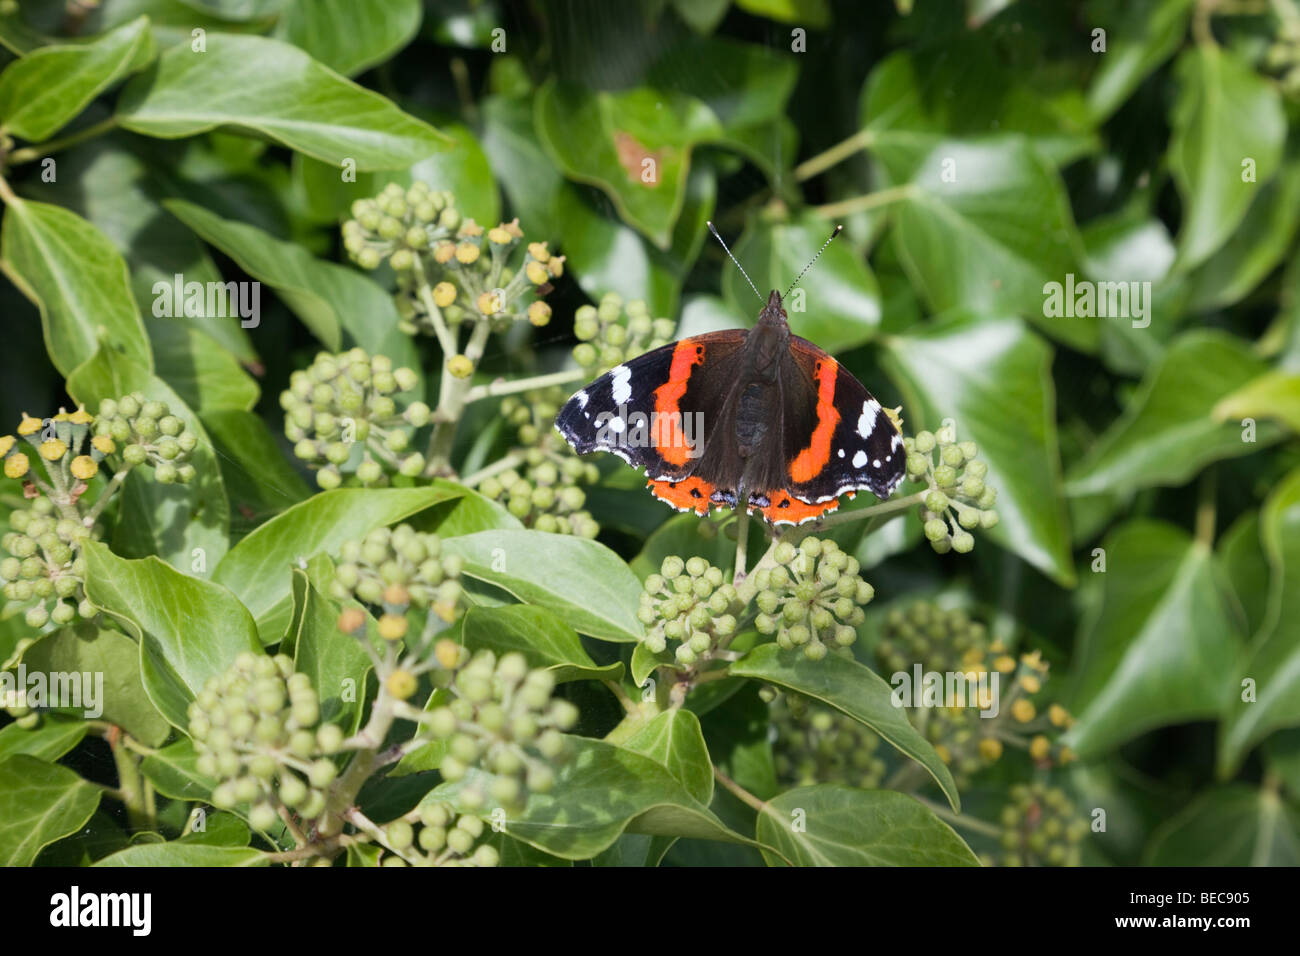 British nature a Red Admiral butterfly (Vanessa atalanta) on ivy flowers (Hedera helix) in early autumn. Wales, UK, Britain Stock Photo